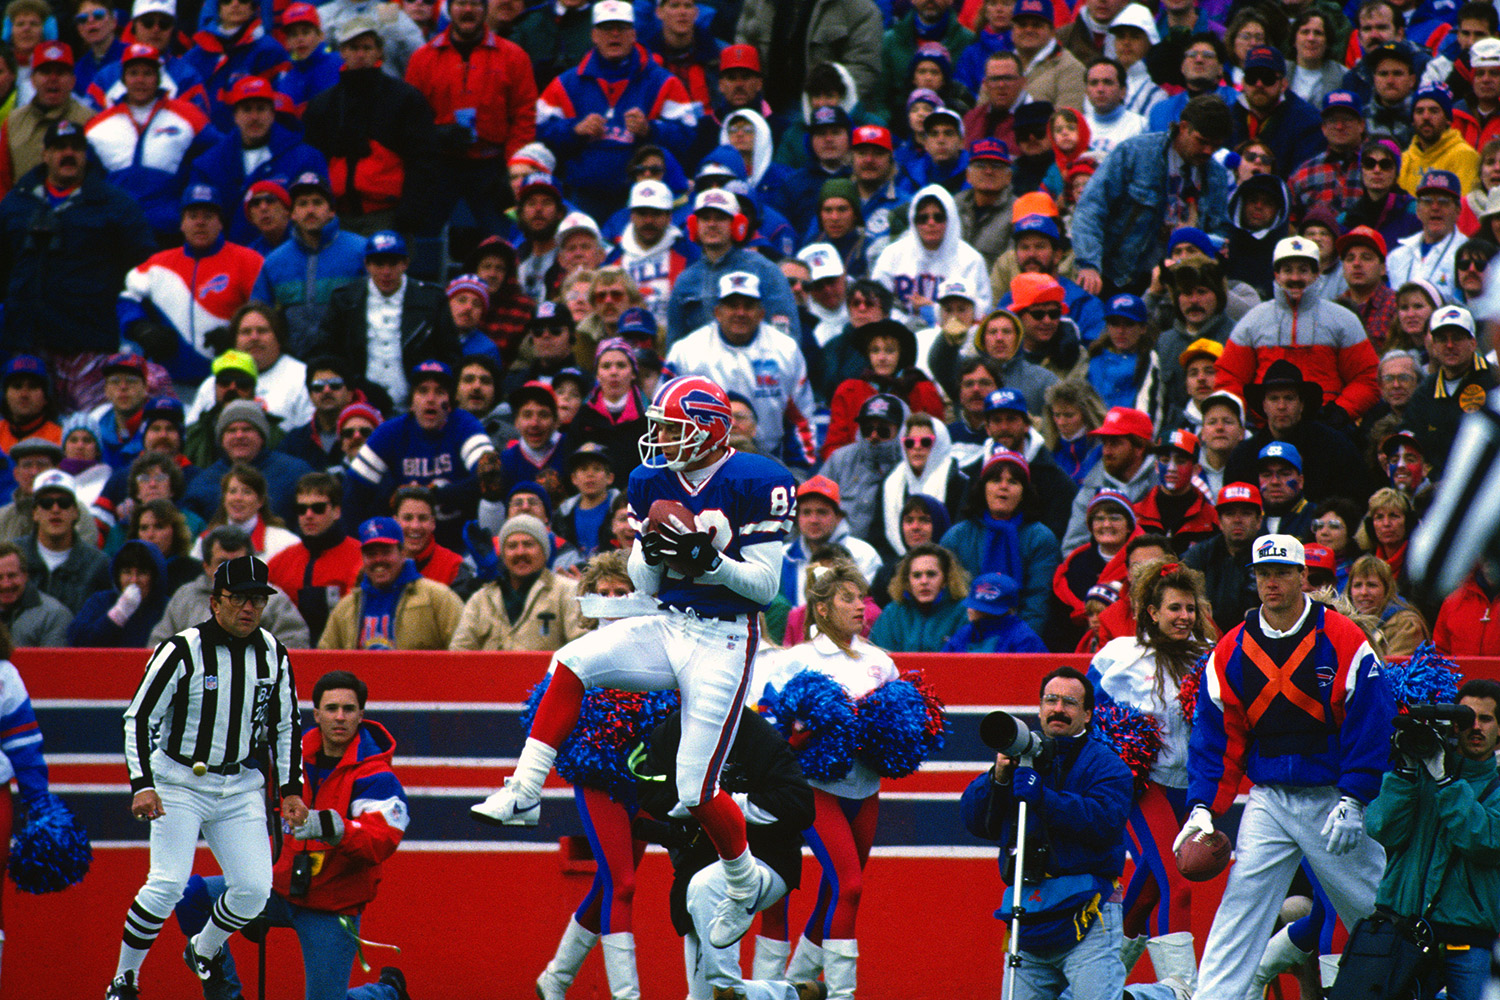 Widely considered to be one of the fastest men in NFL history, Beebe was selected with the 82nd overall pick in the 1989 NFL Draft by the Buffalo Bills. Beebe was also one of only two players to have appeared in six Super Bowls. (*Beebe's time was calculated before the NFL implemented electronic timing to improve accuracy.)